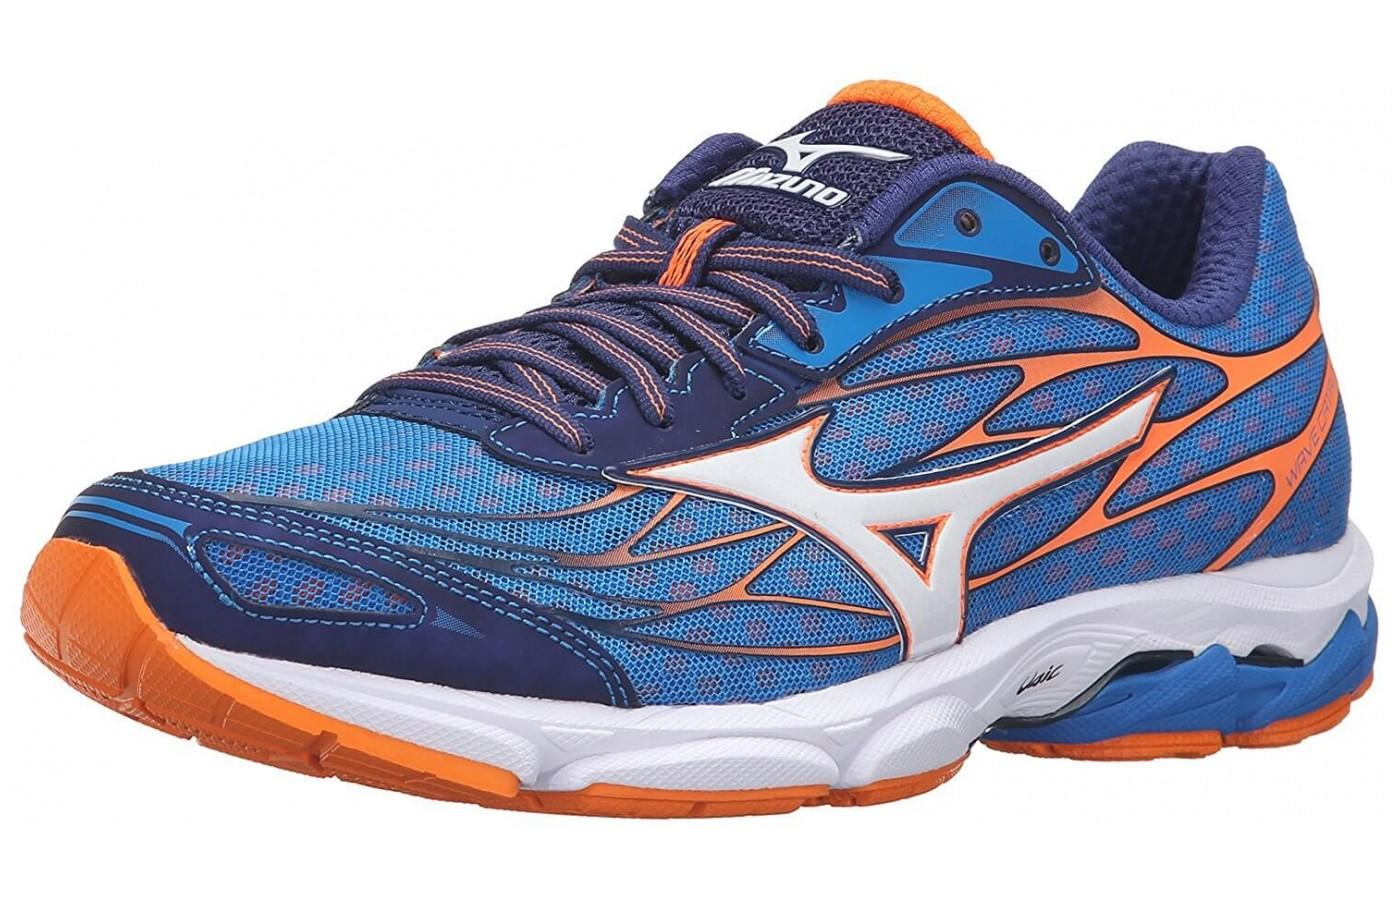 5f2ae6bac7 Mizuno Wave Catalyst 2. Lightweight stability shoe ...